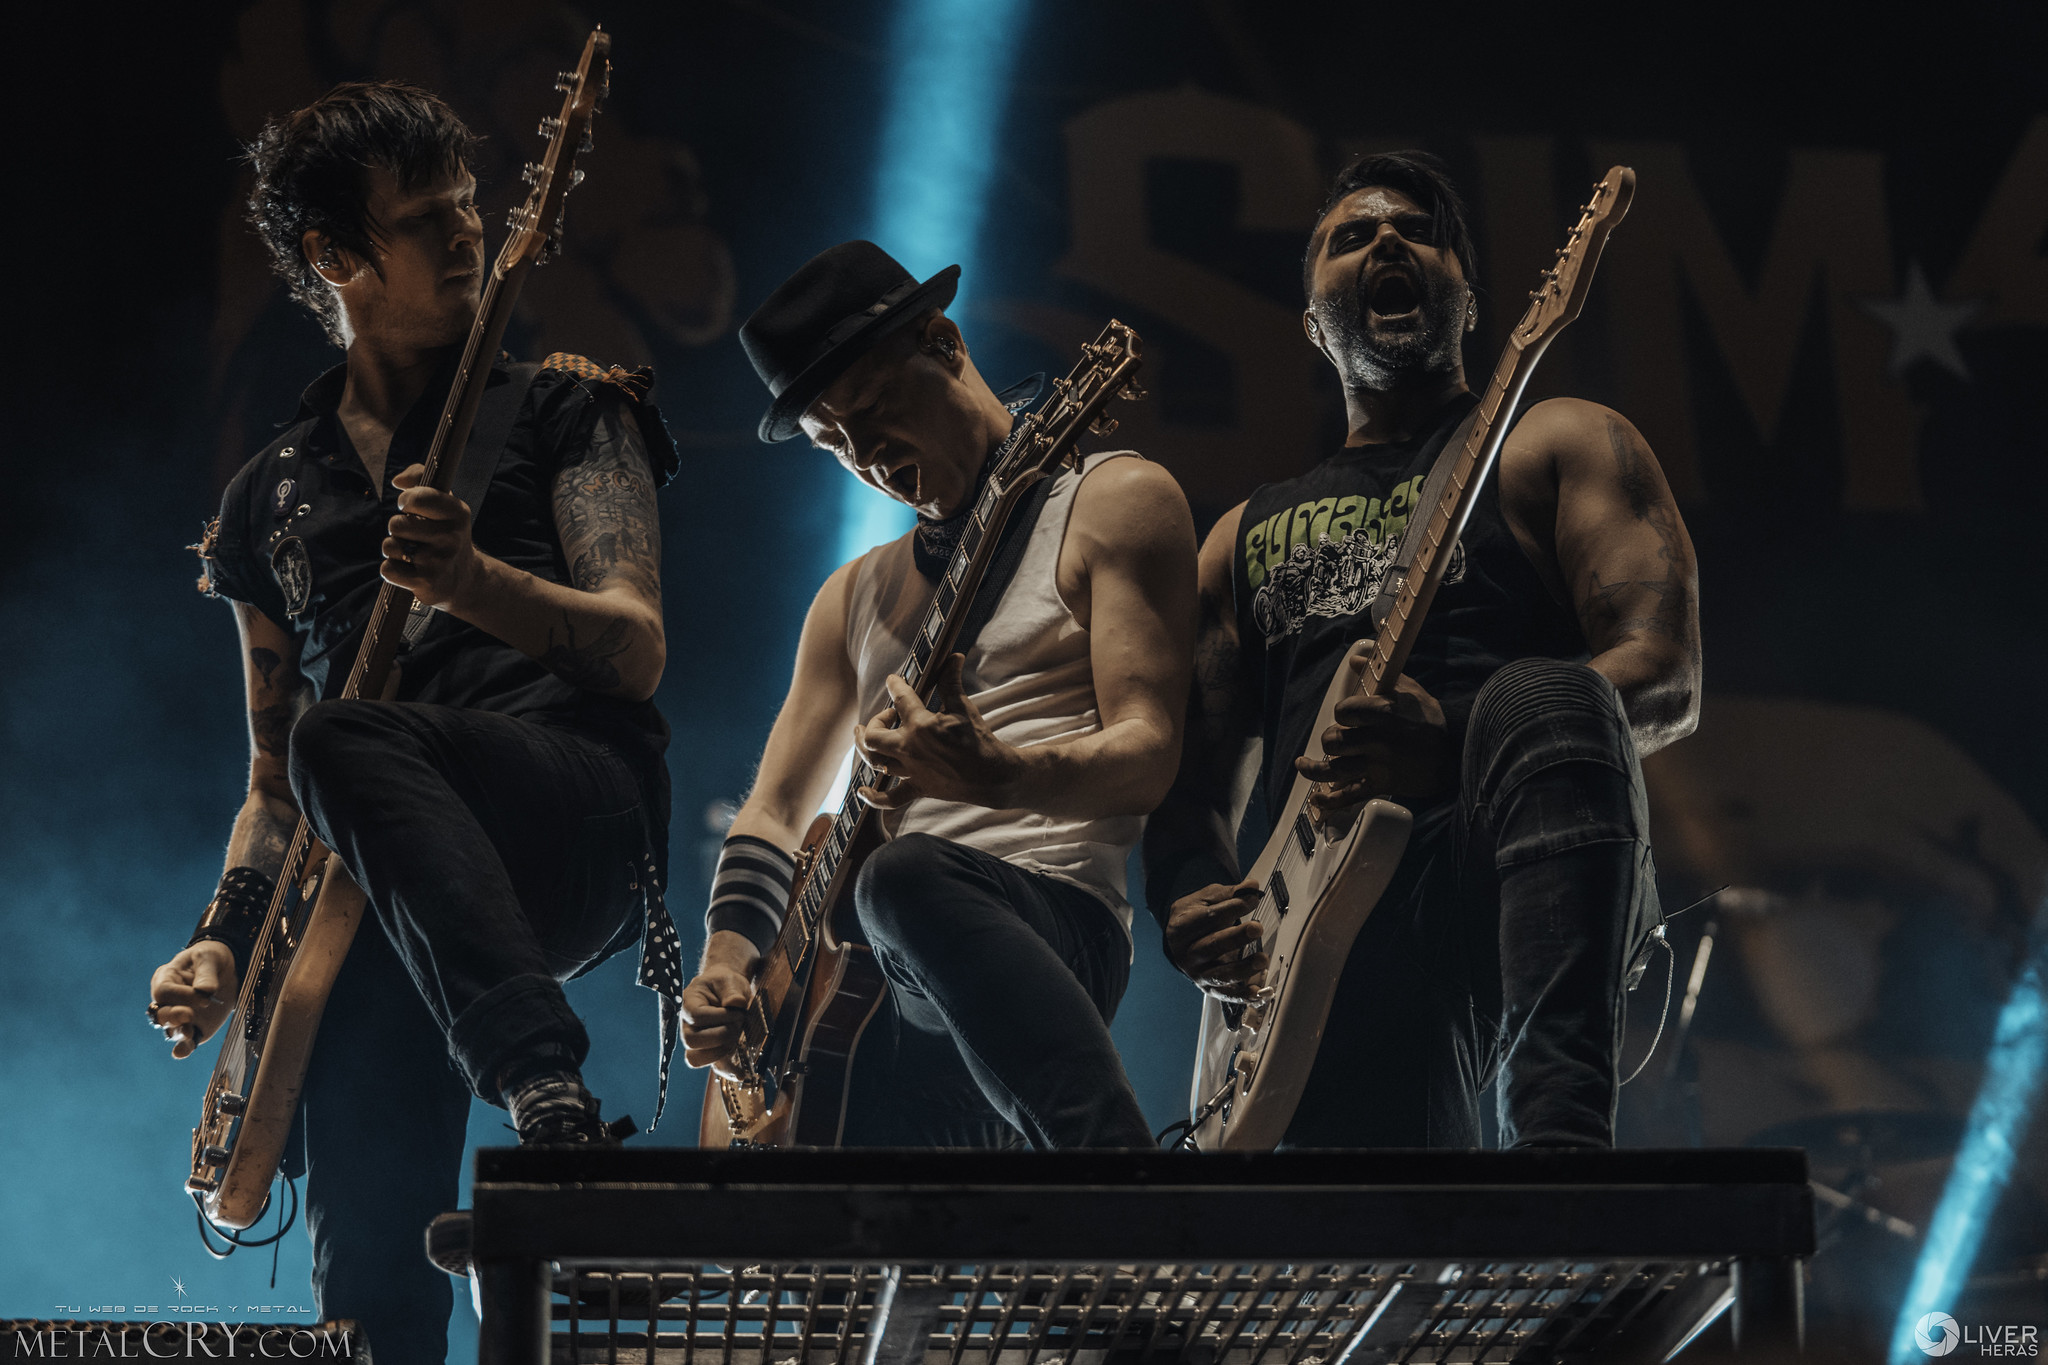 SUM 41 @ Download Madrid 2019